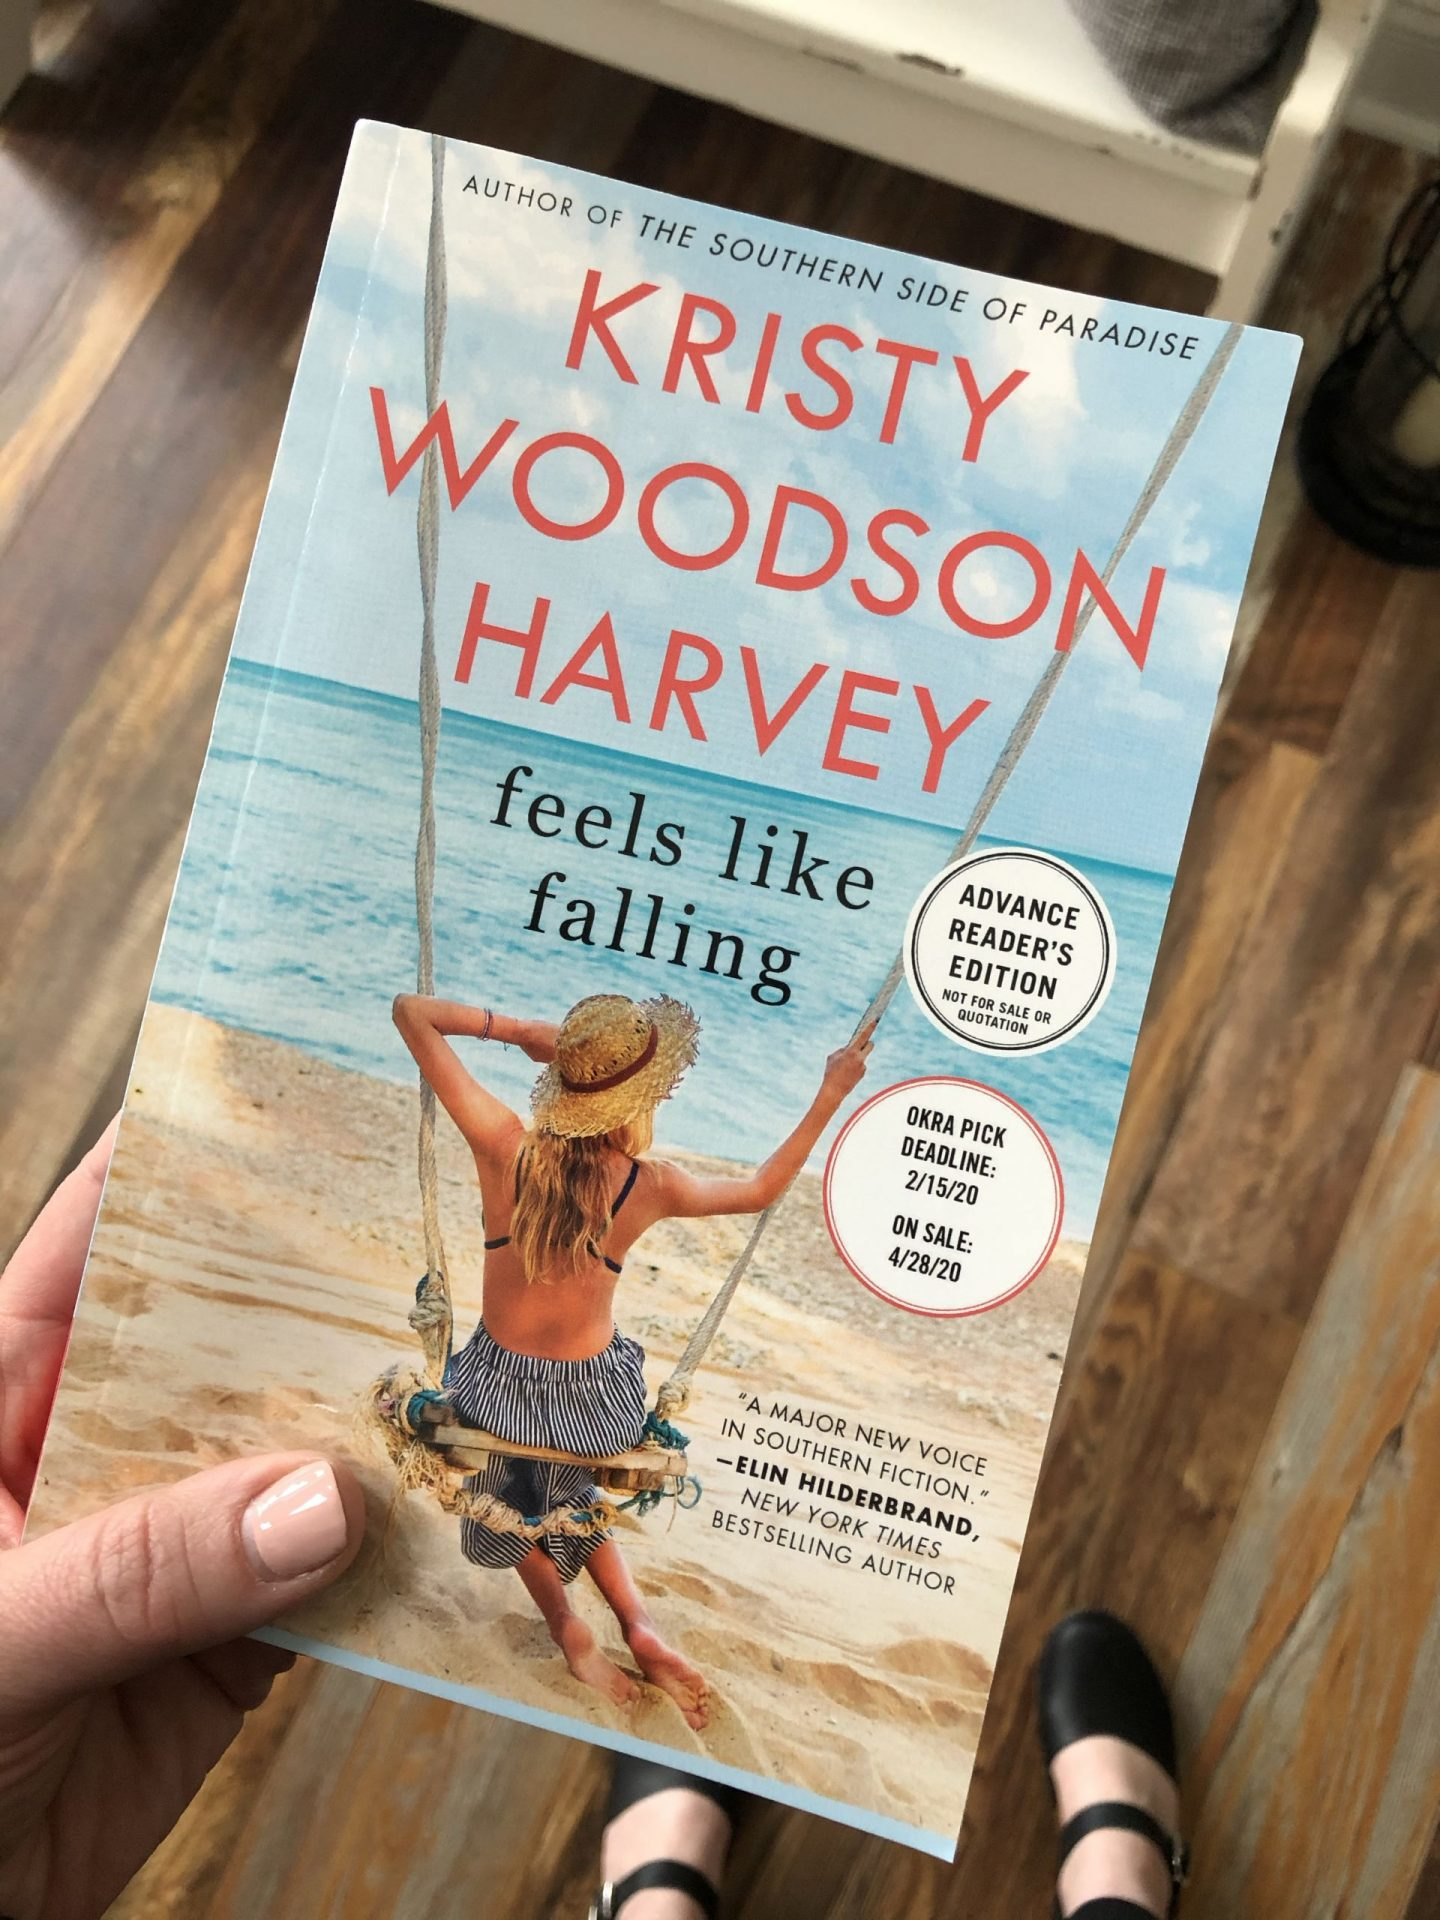 NC blogger Rebecca Lately shares the books that she's currently reading. If you love time management or easy beach reads, come check it out!